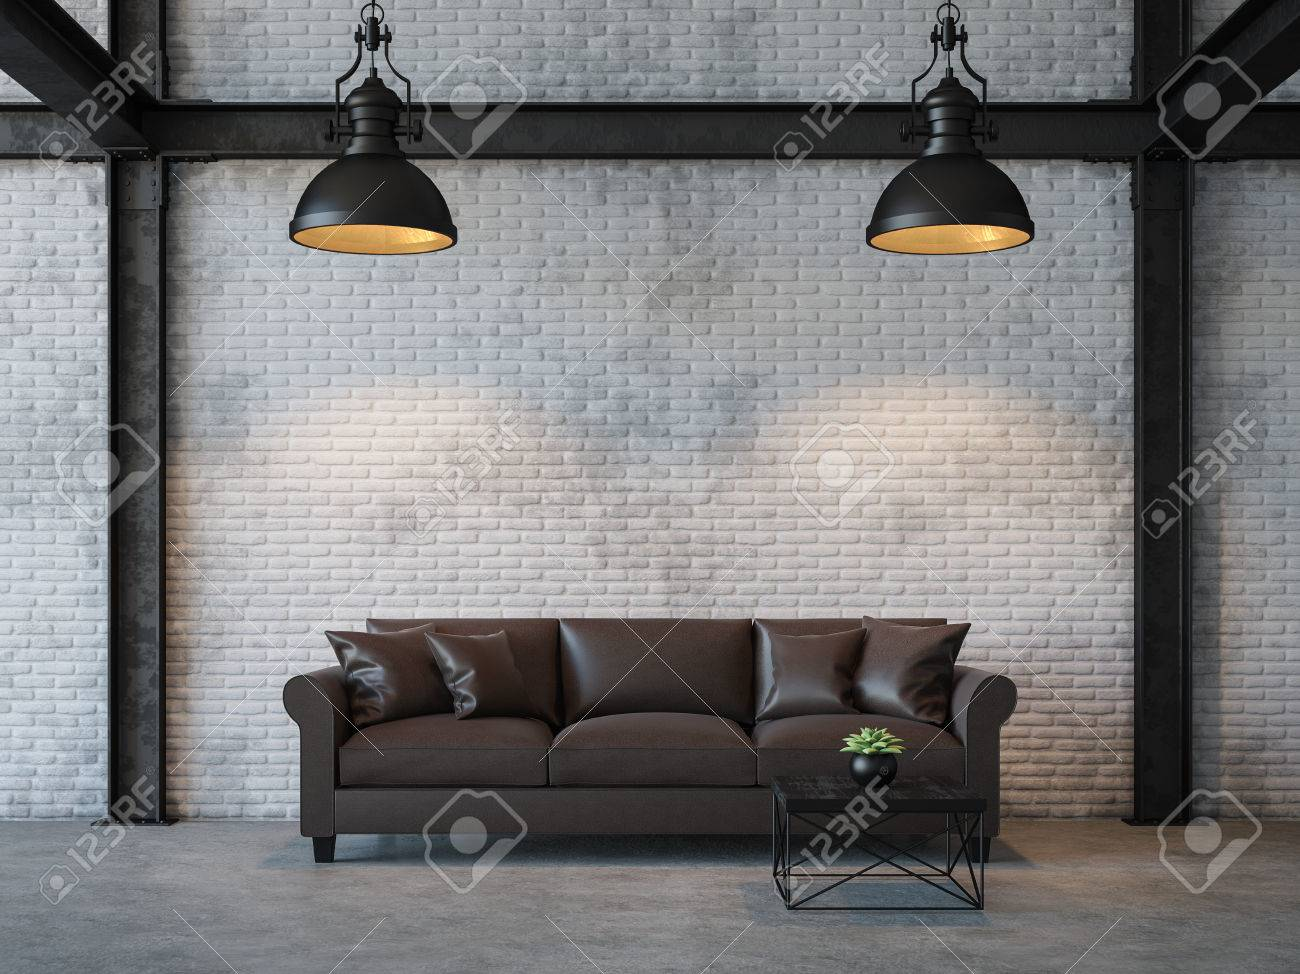 Loft style living room 3d rendering image.There are white brick wall,polished concrete floor and black steel structure.Furnished with dark brown leather sofa - 83013471